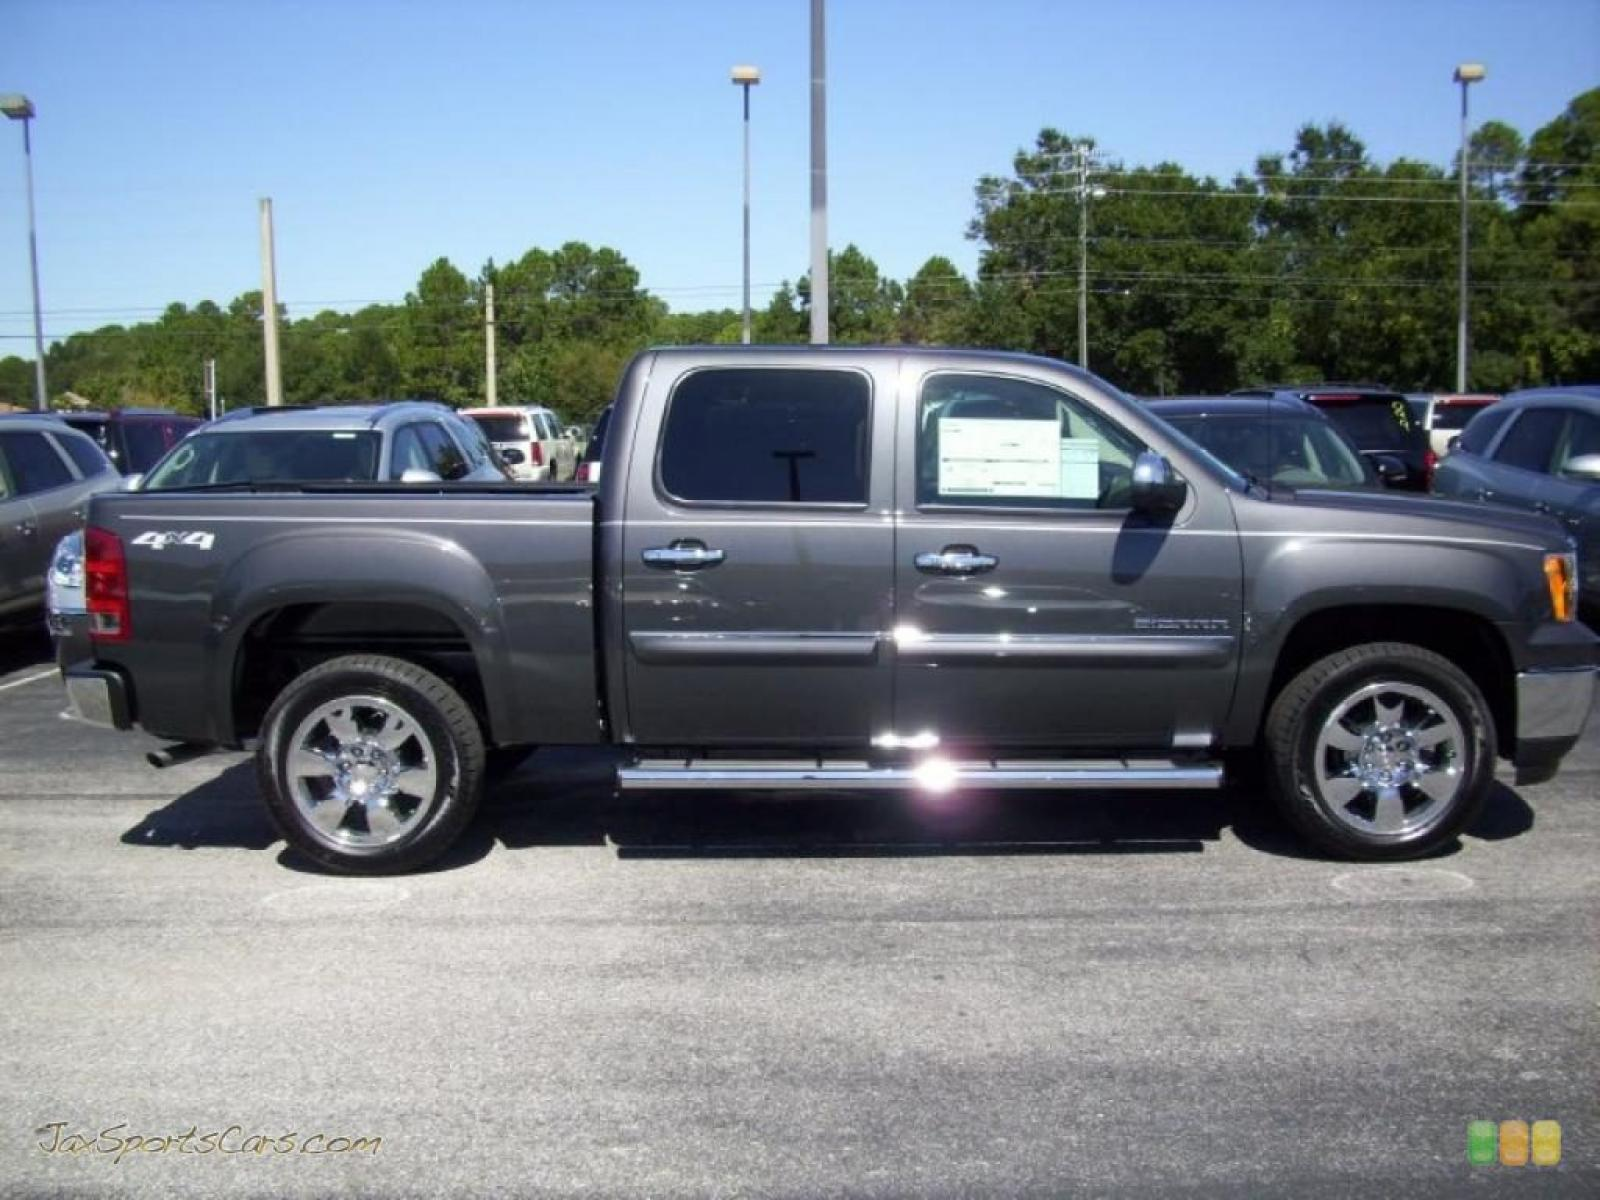 2011 gmc sierra 1500 information and photos zombiedrive. Black Bedroom Furniture Sets. Home Design Ideas